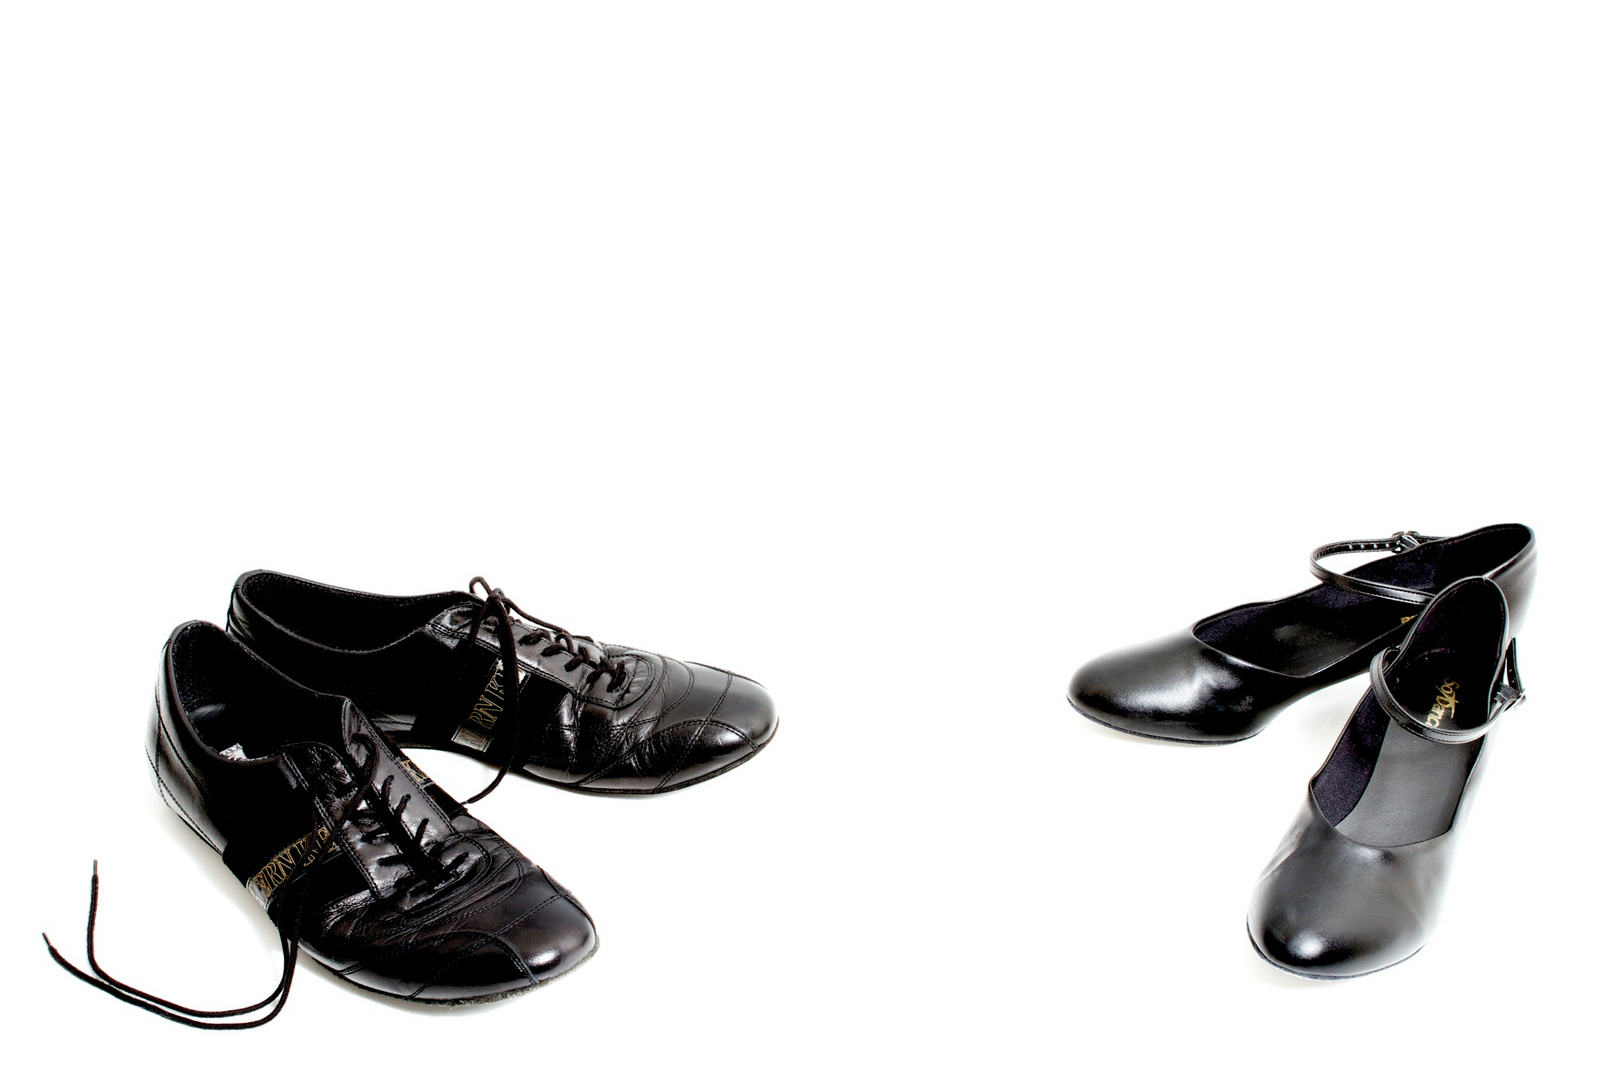 Ready to dance - still life of dancing shoes